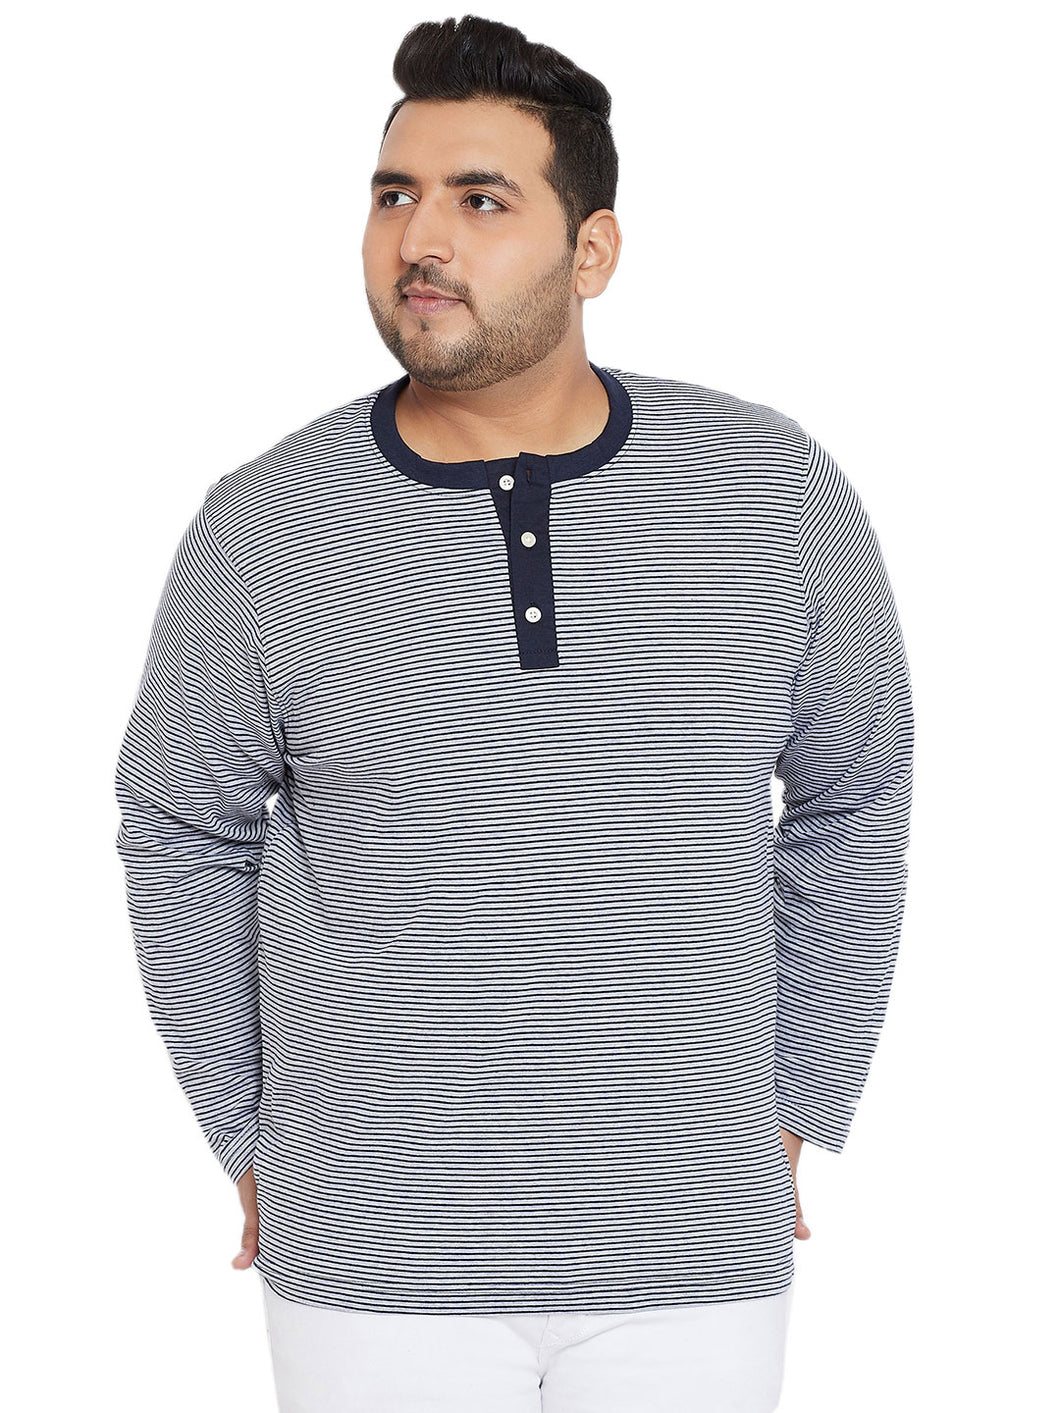 bigbanana Everard White Striped Plus SIze Henley Neck T-shirt